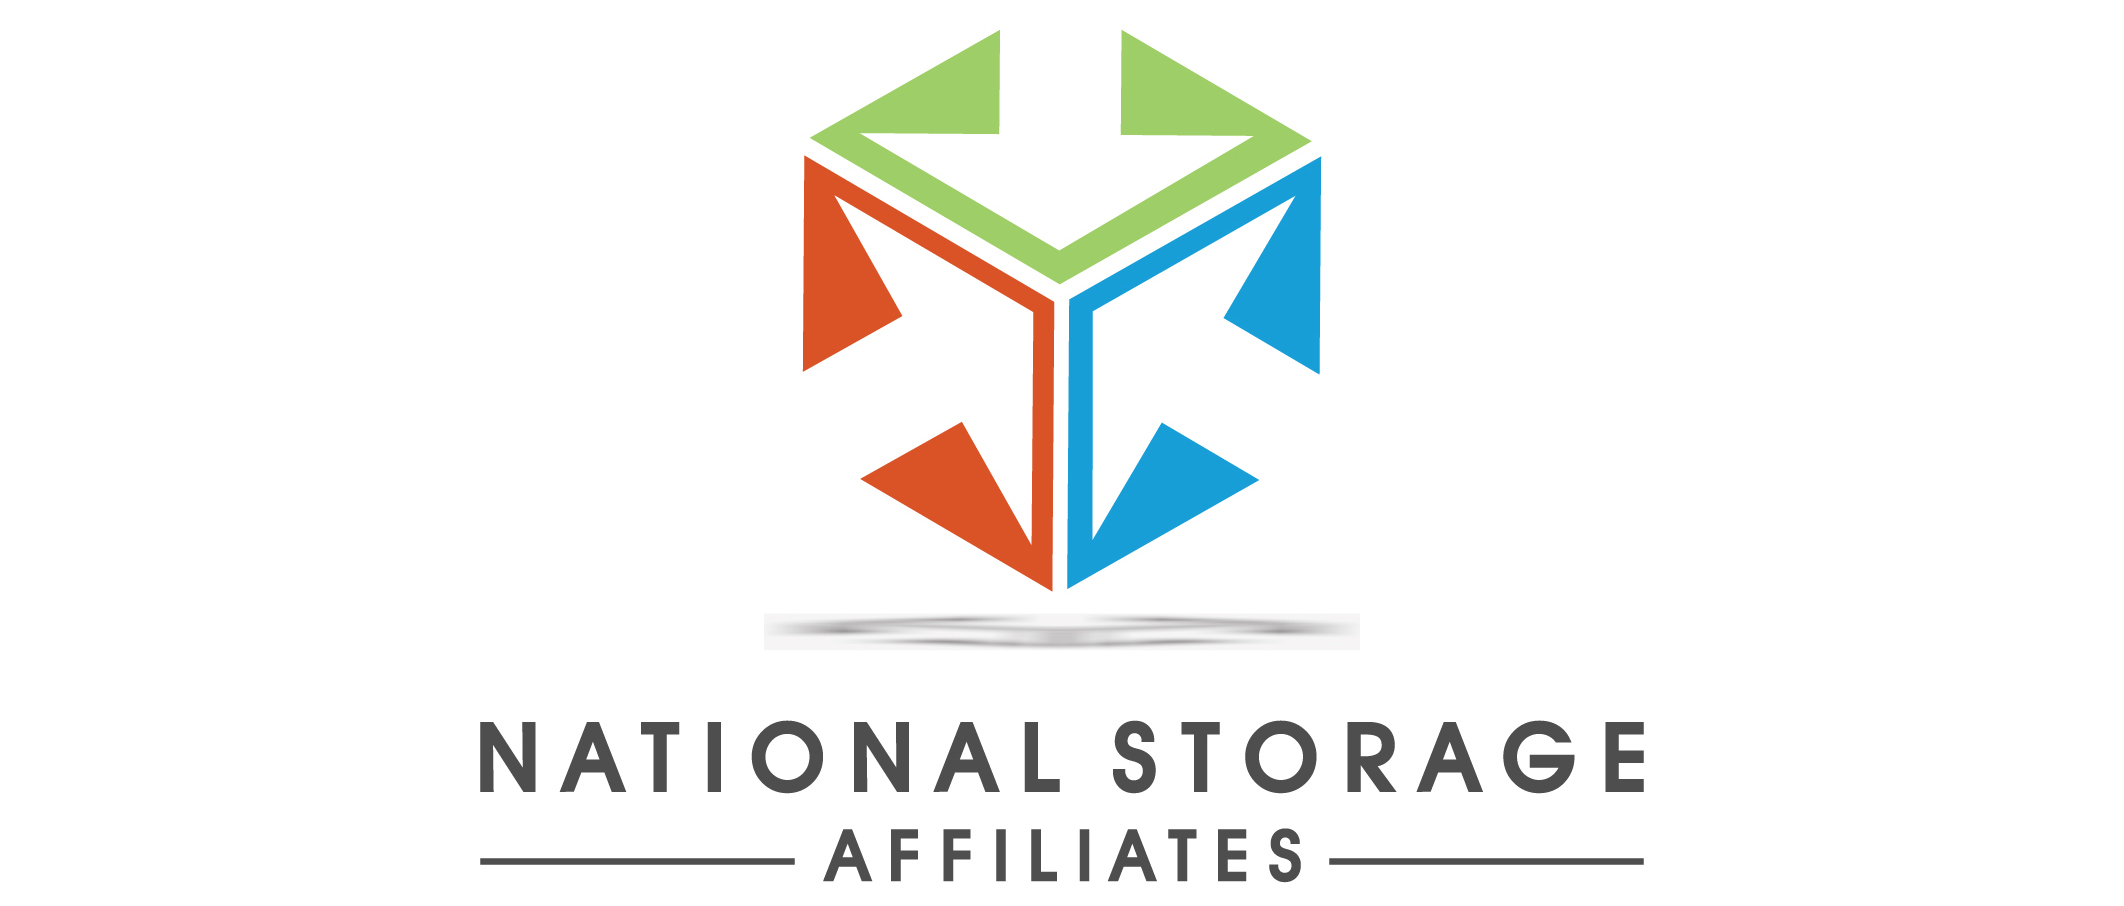 National Storage Affiliates Trust Company Logo